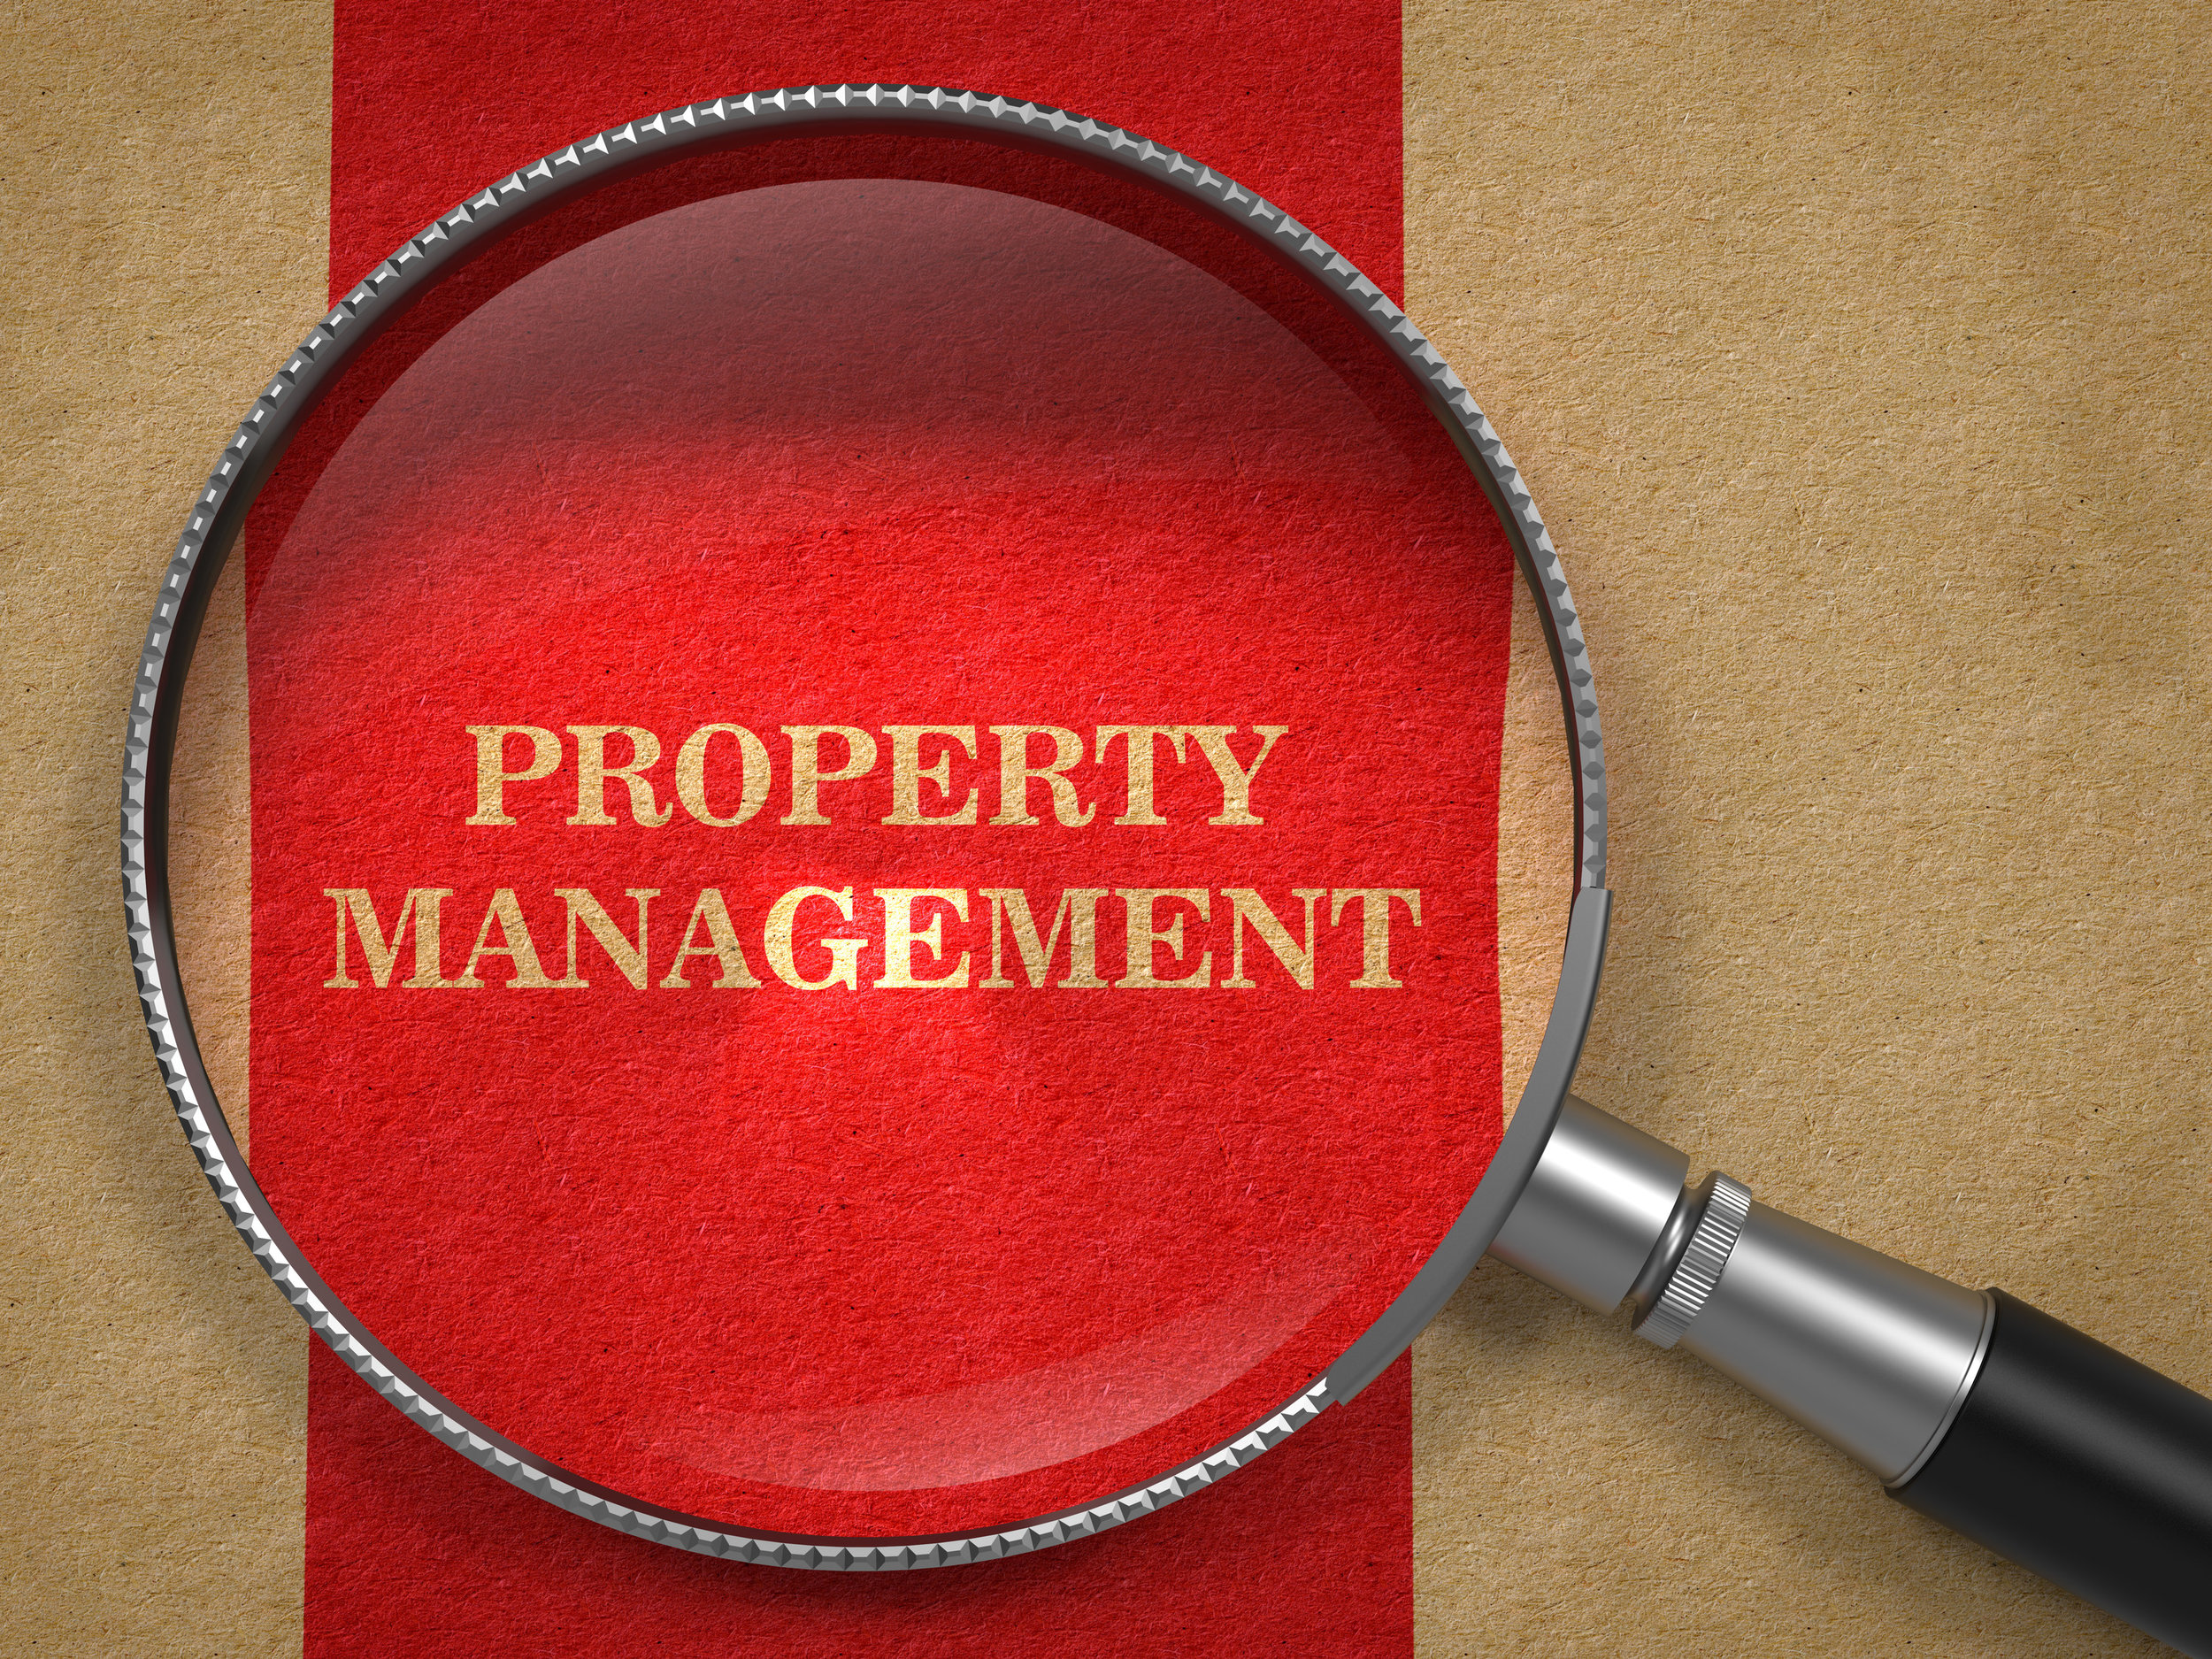 Property Management? - Owning rental property can be costly and time consuming. With the right property management company by your side, it doesn't have to be.Learn More...